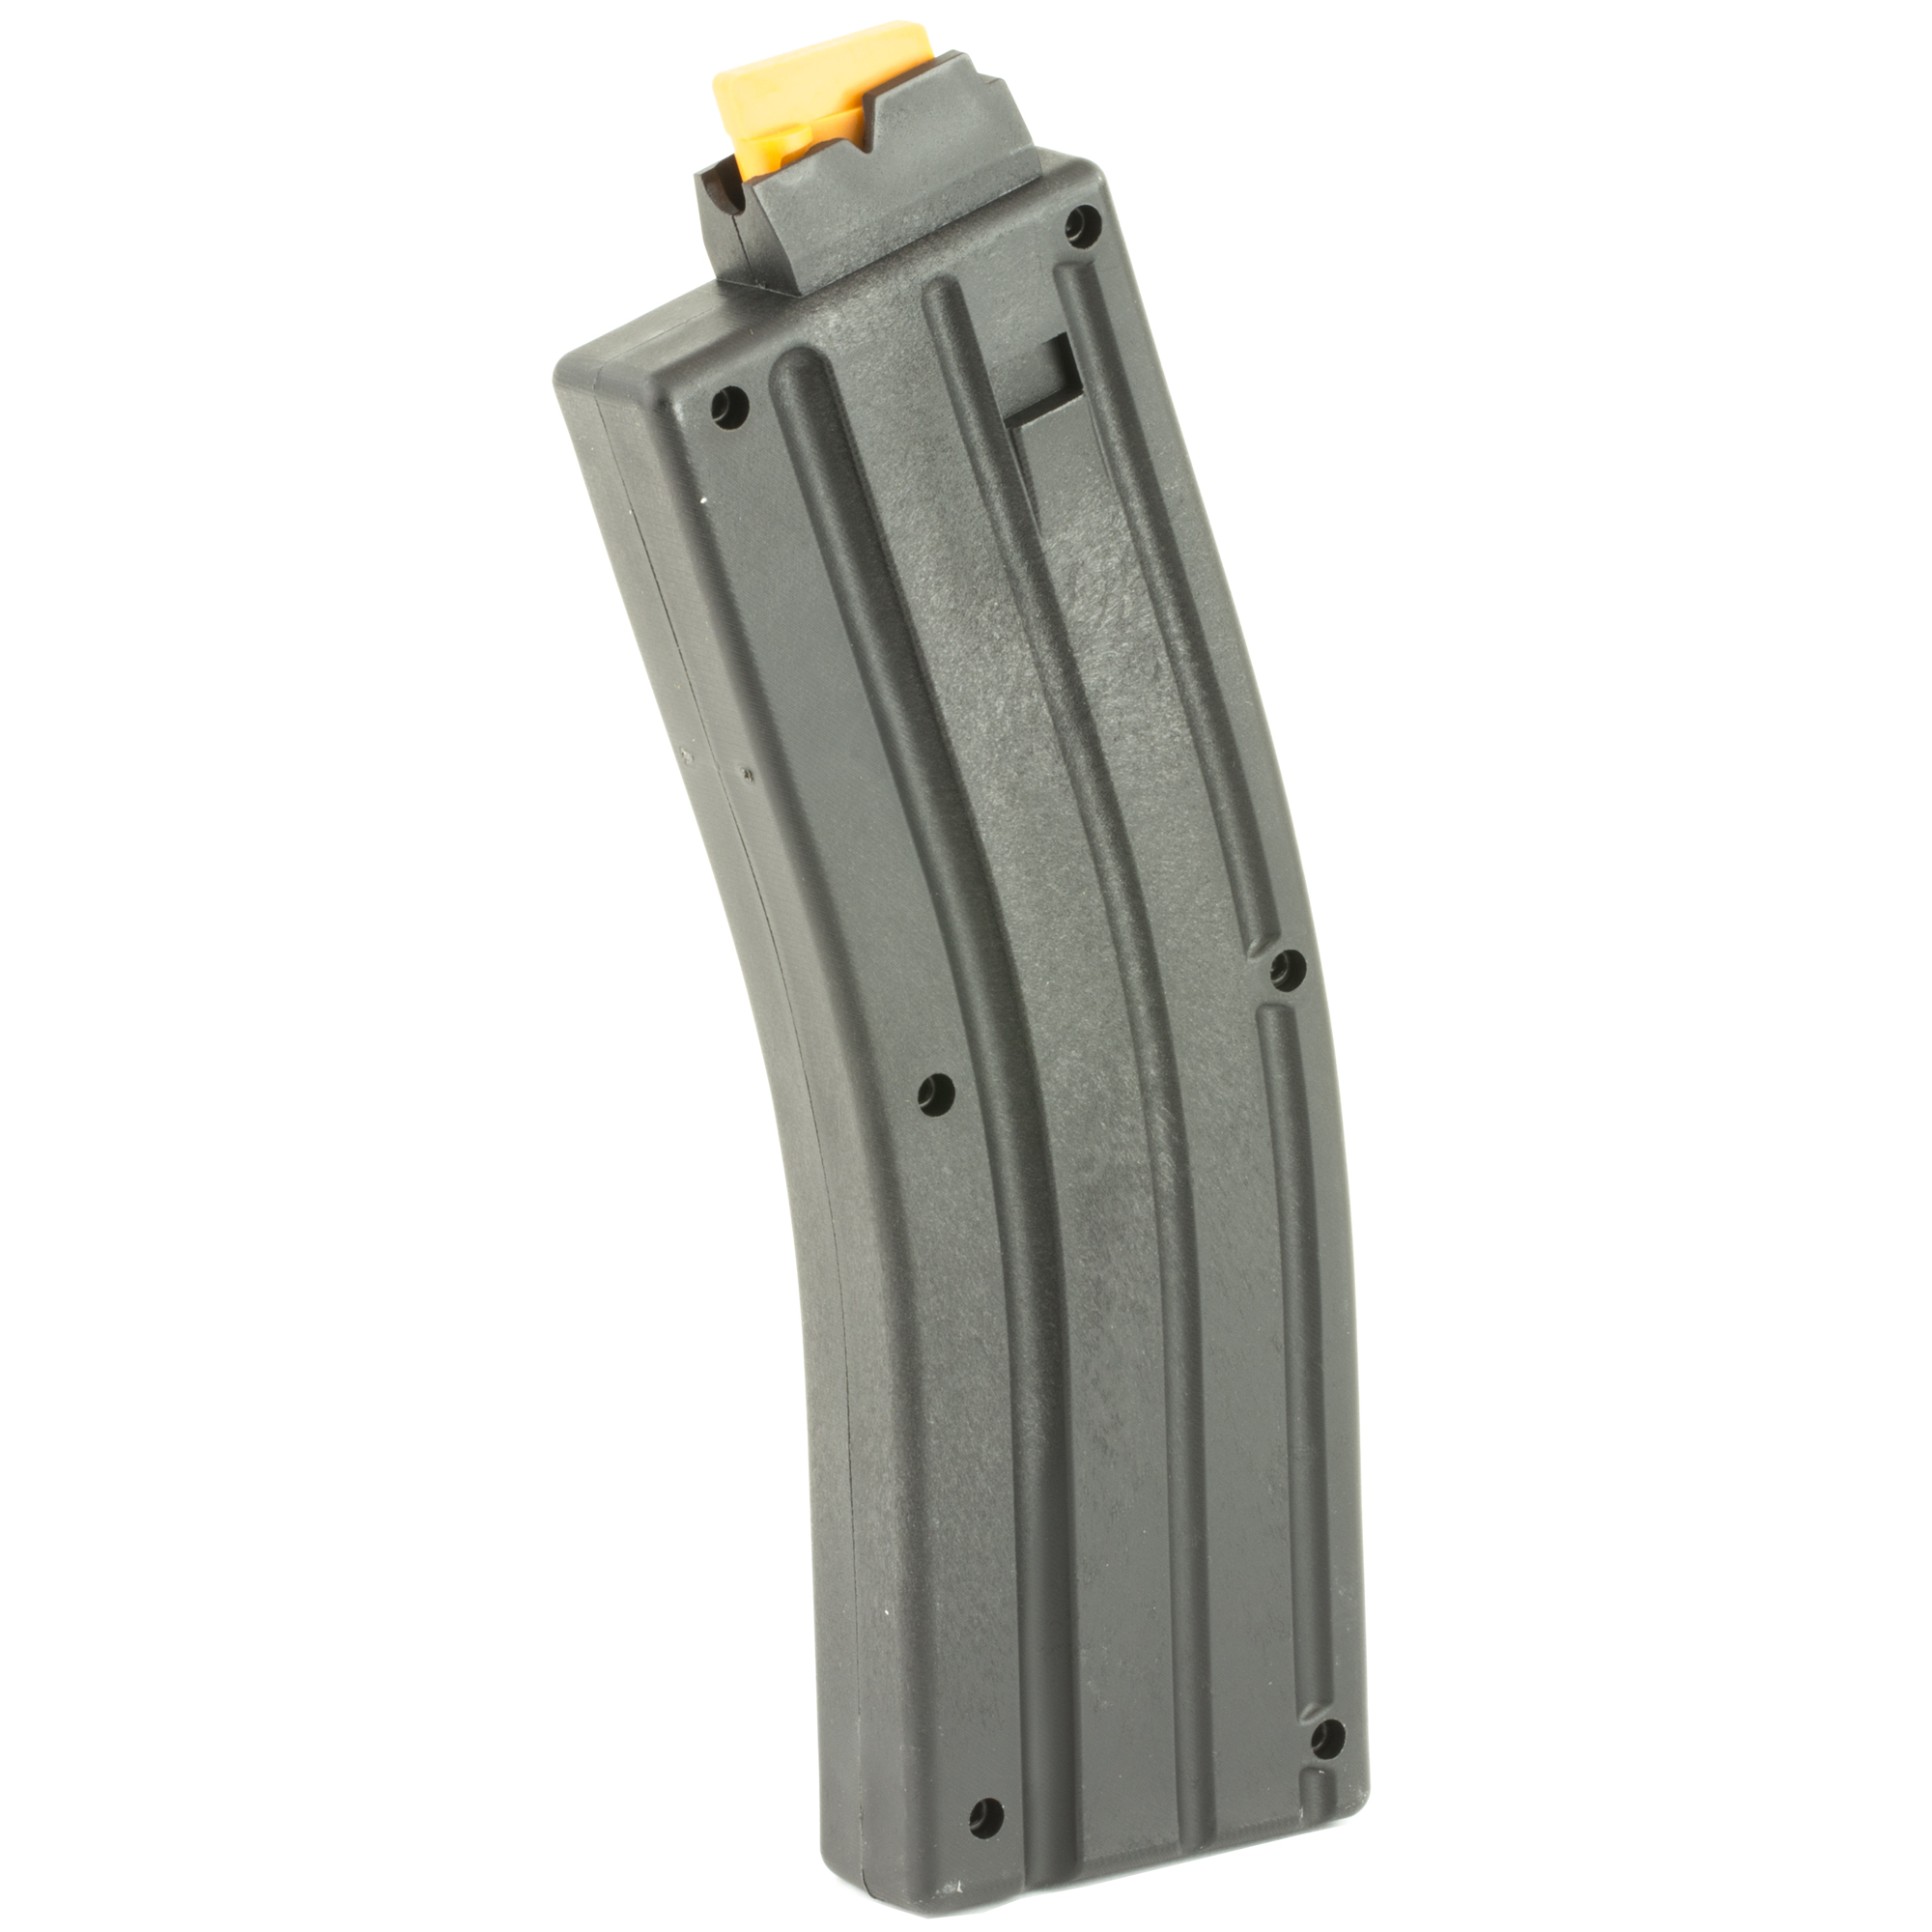 This CMMG Magazine is a standard factory replacement magazine that is designed for use with the CMMG 22LR AR conversions. This magazine holds 10 rounds of .22 Long Rifle and is made of polymer.